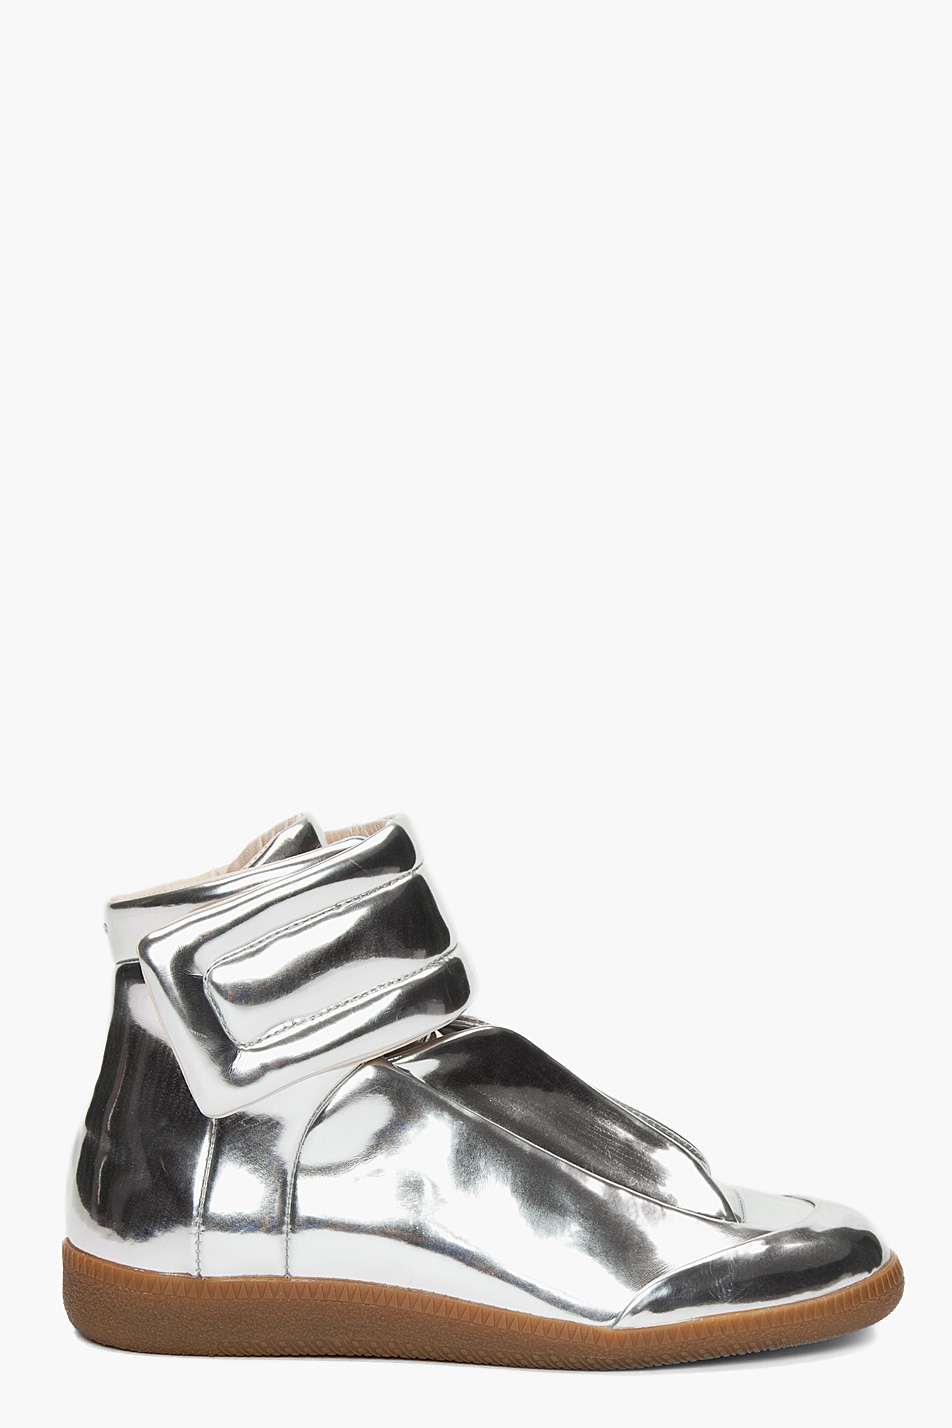 maison martin margiela metallic sneakers. Black Bedroom Furniture Sets. Home Design Ideas